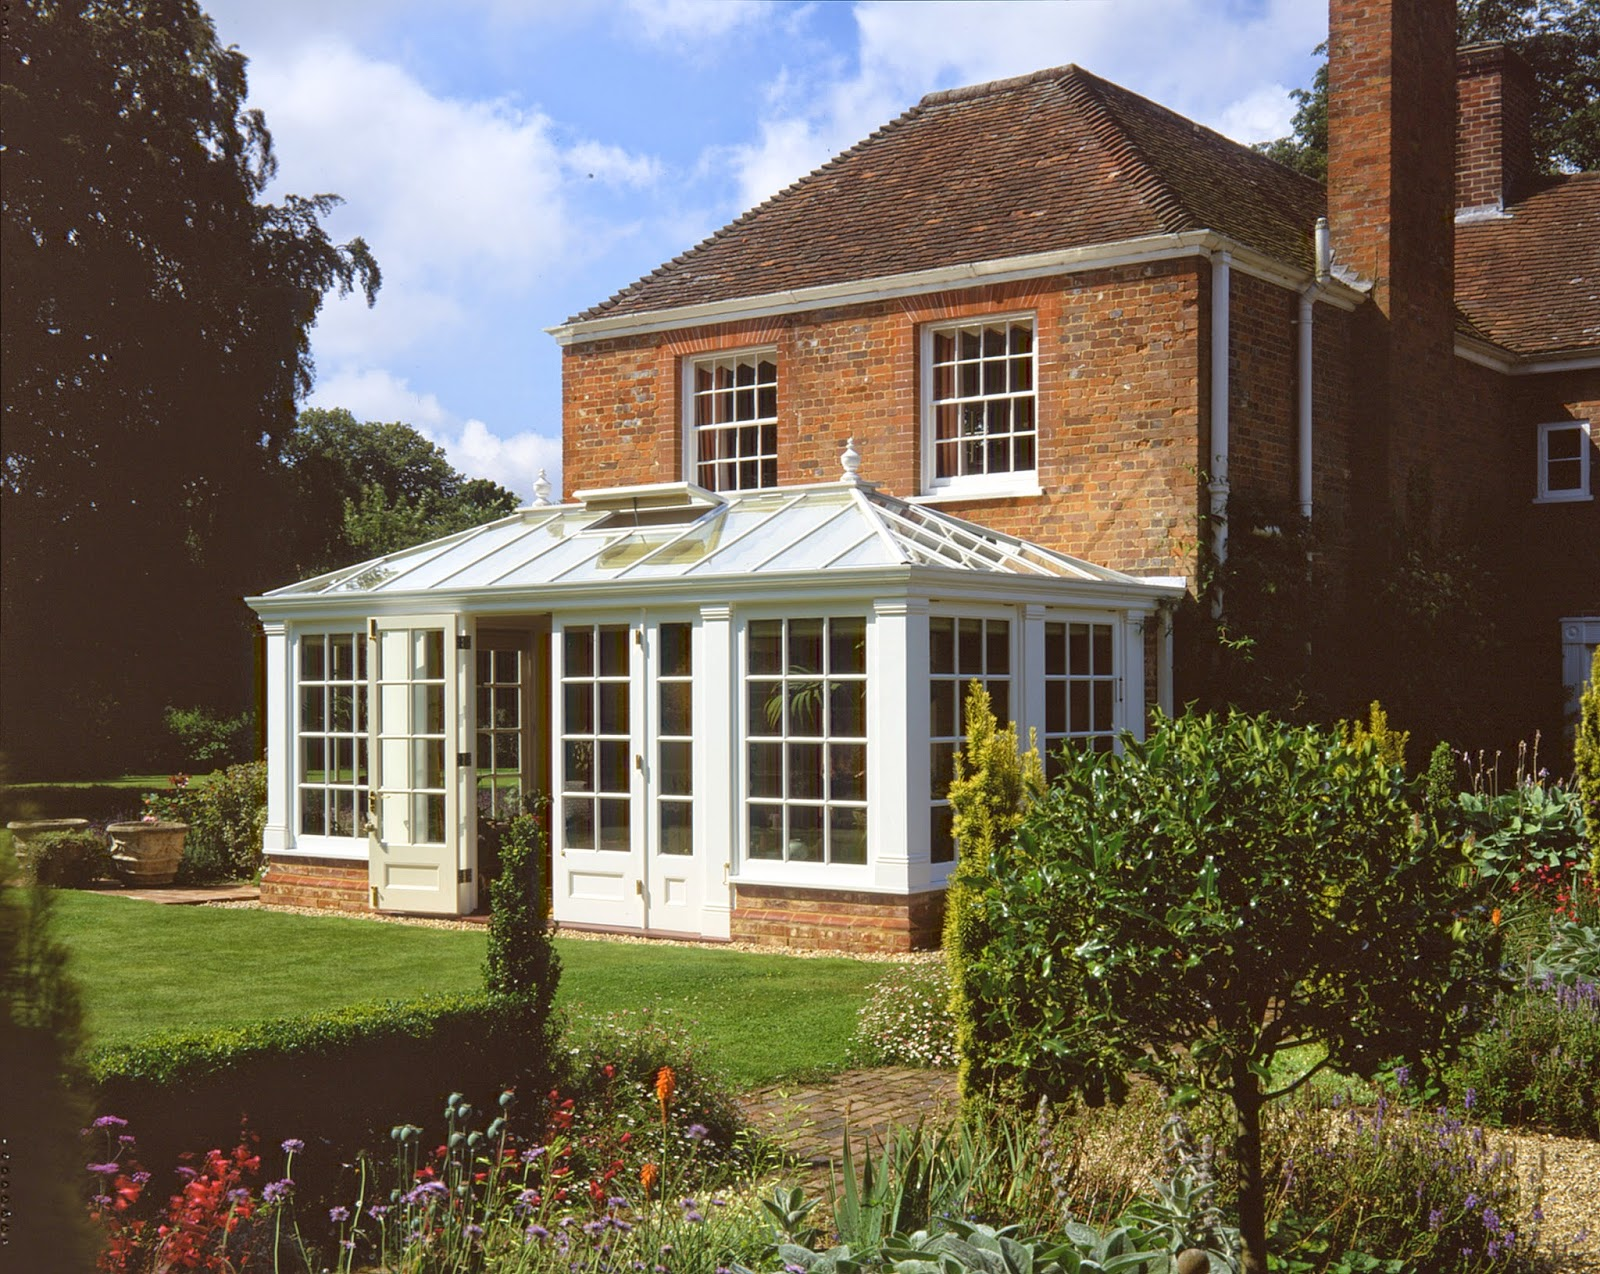 Traditional Conservatory Build By Foxfurd Ltd in Oxfordshire